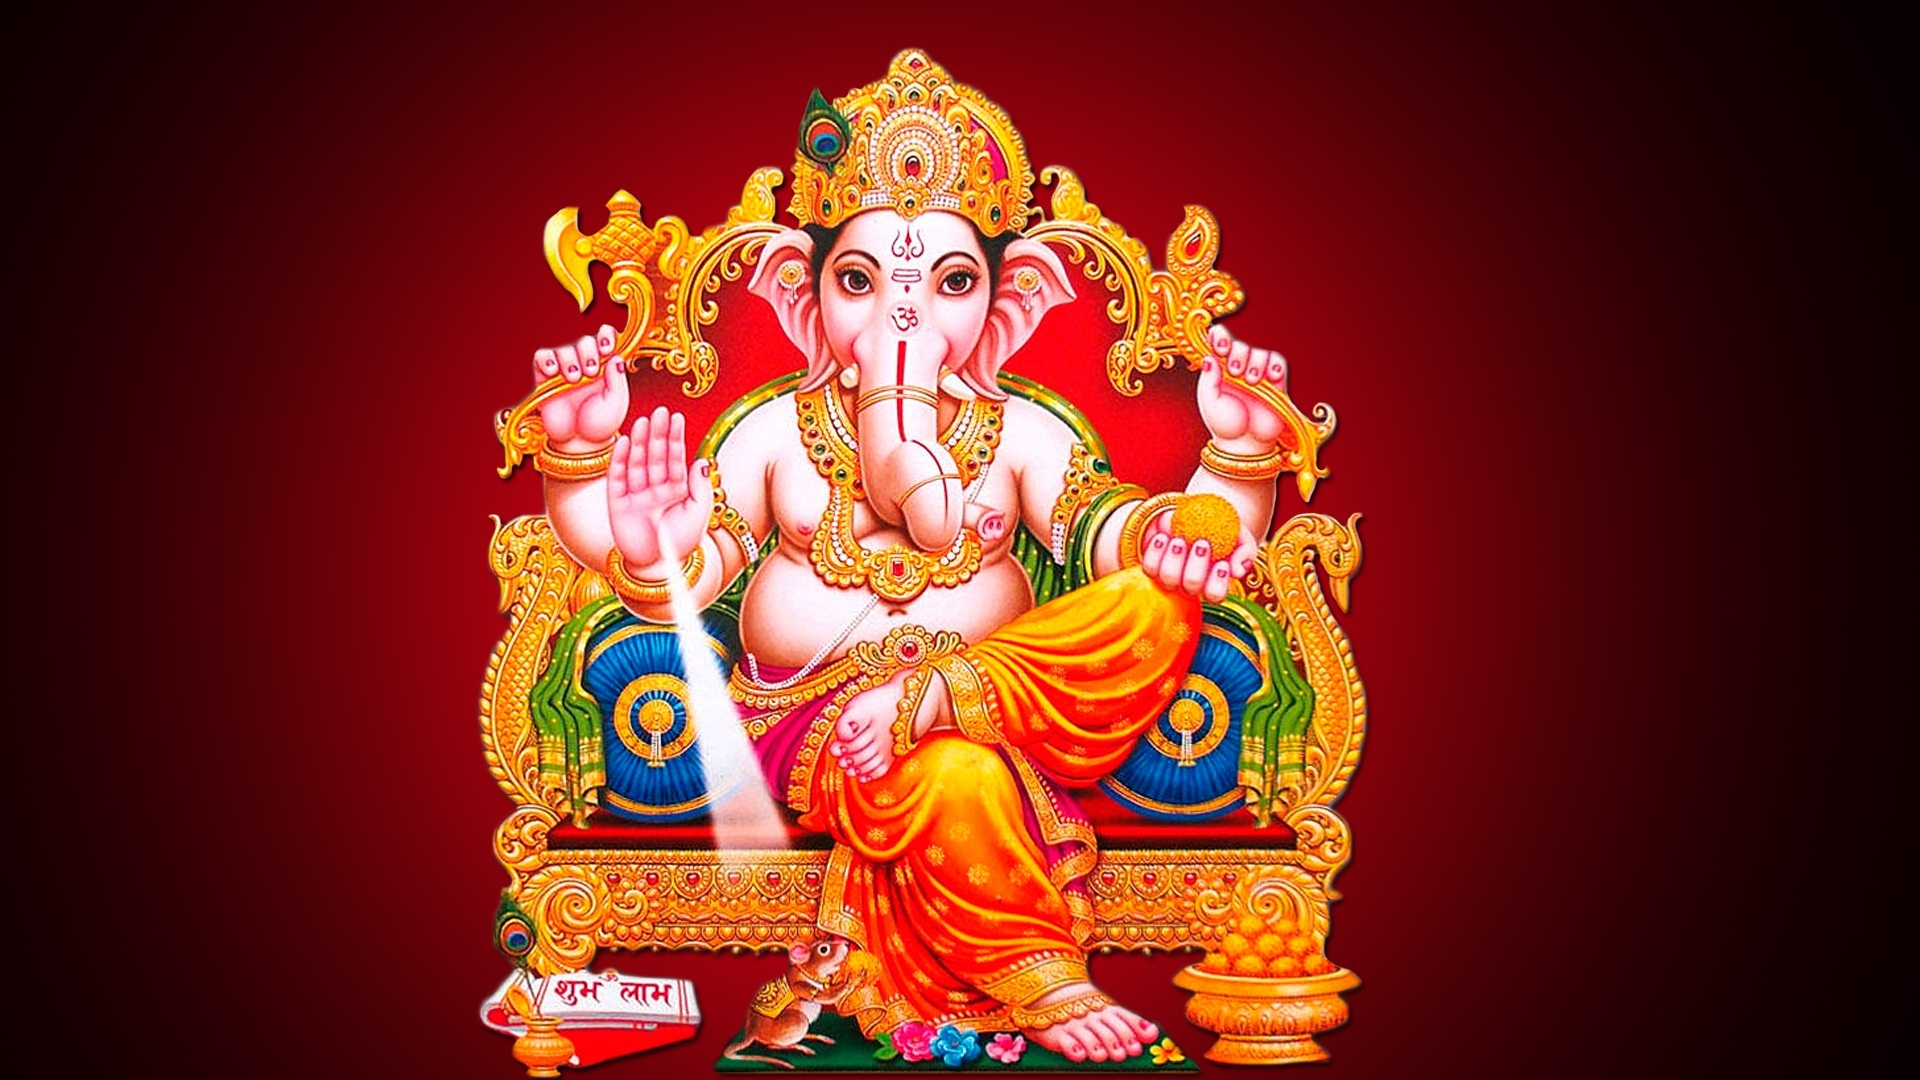 Hd wallpaper ganpati - Download Ganesh Chaturthi Hd Wallpaper